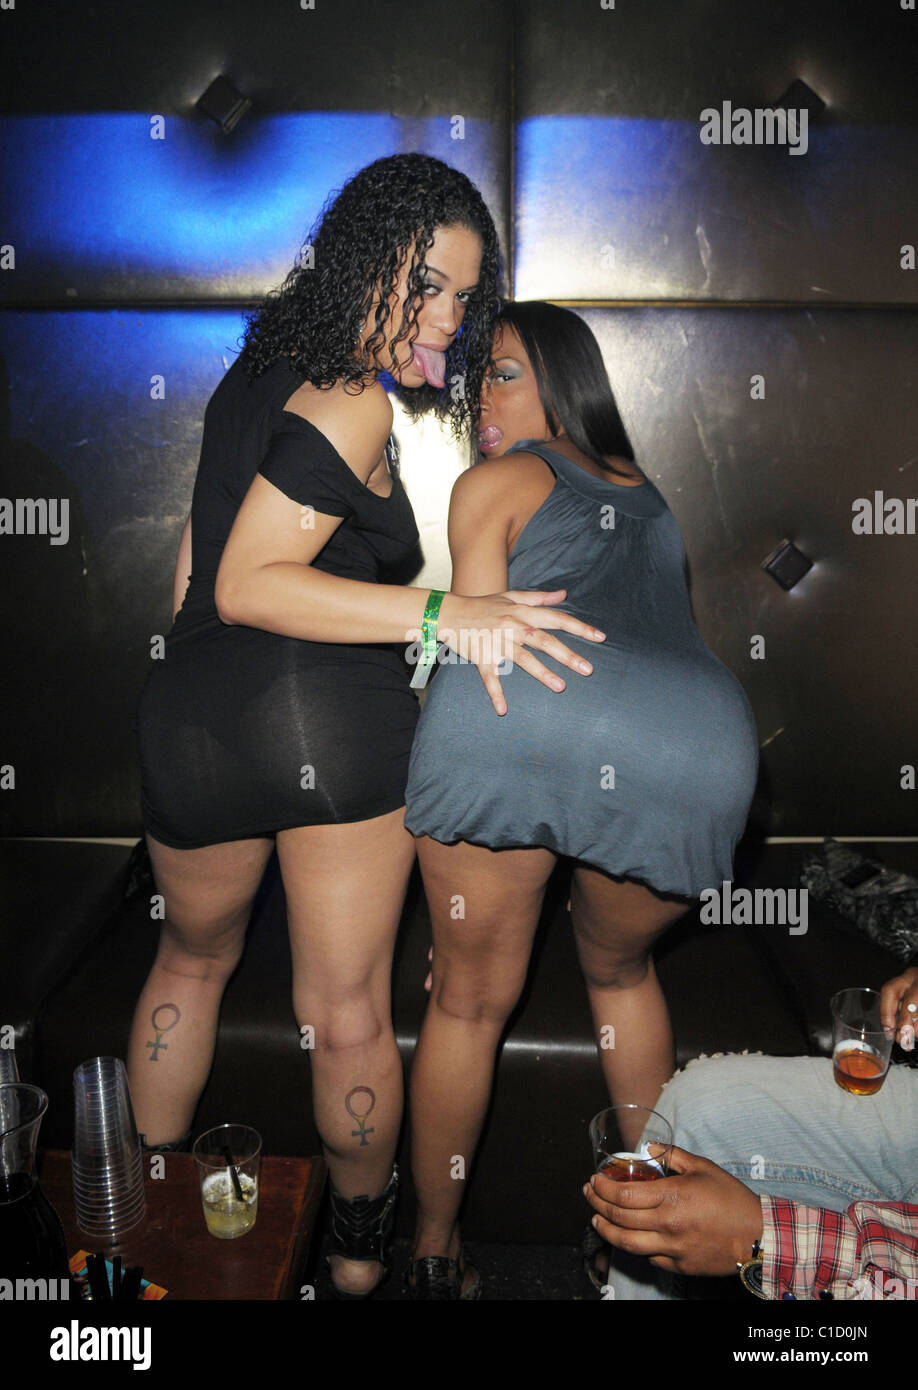 Chyanne Jacobs Celebrates Her Birthday With A Friend At Club Sobe Live Miami Beach Florida